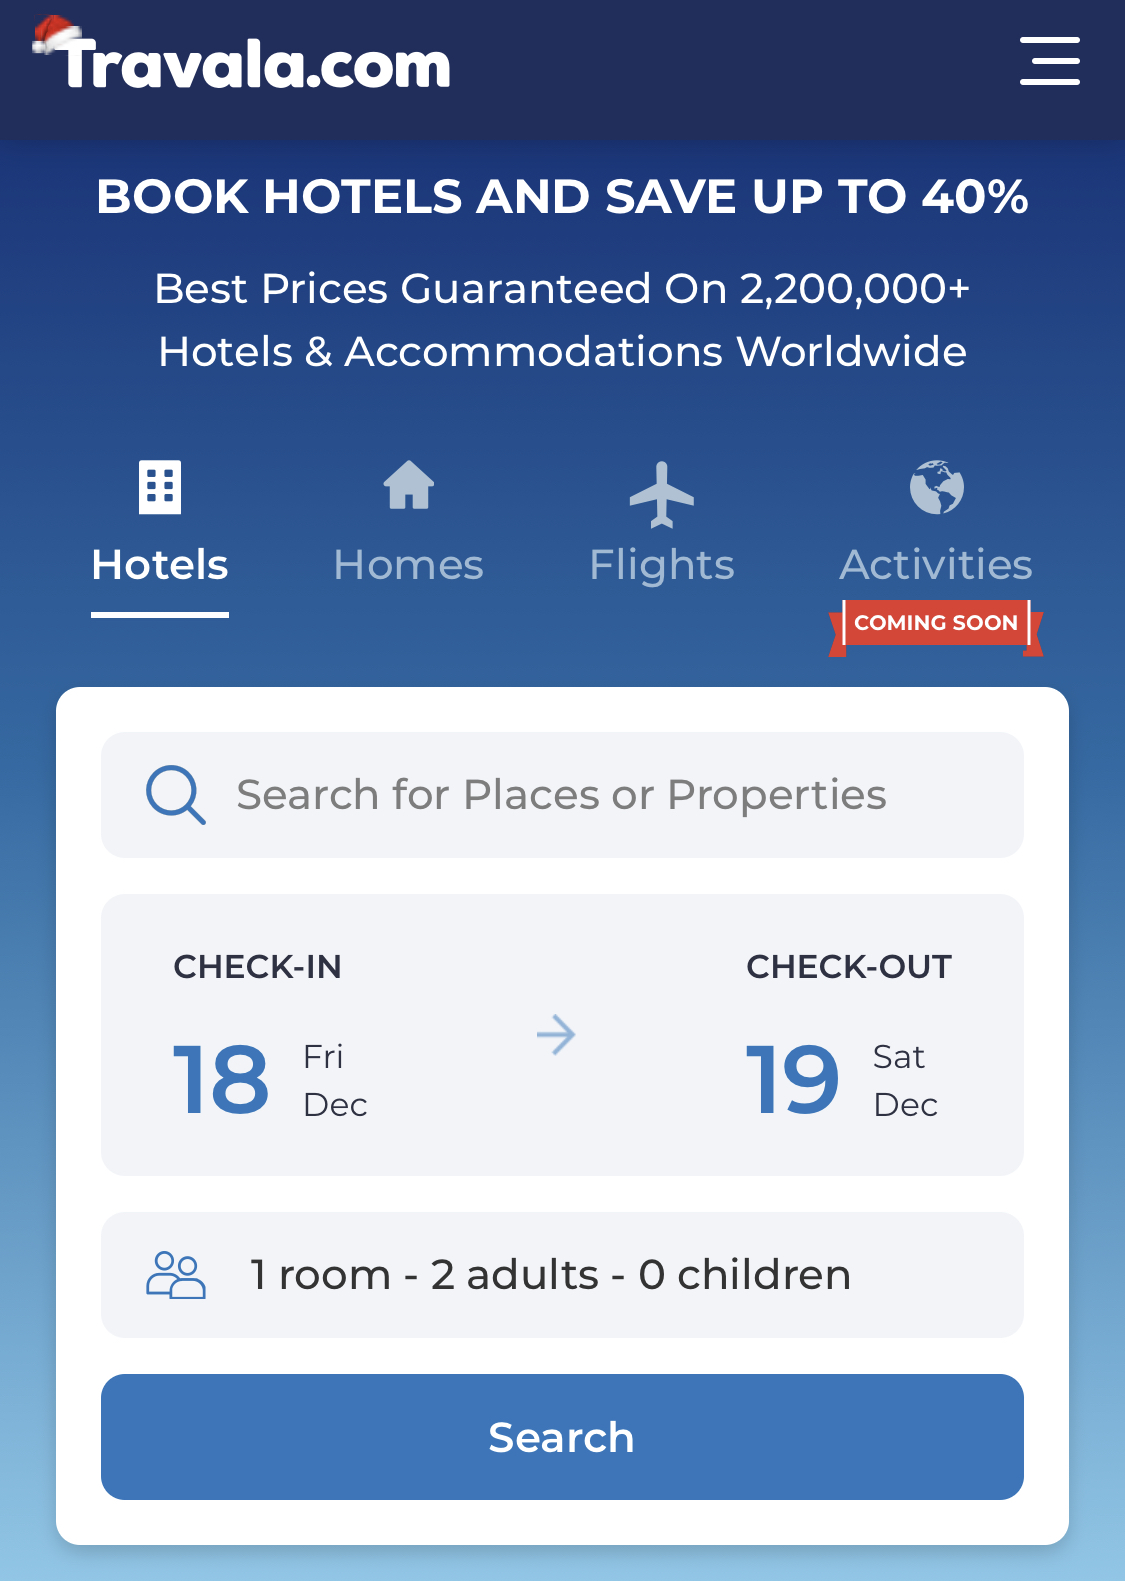 How does Travala.com work and what is Travala crypto?